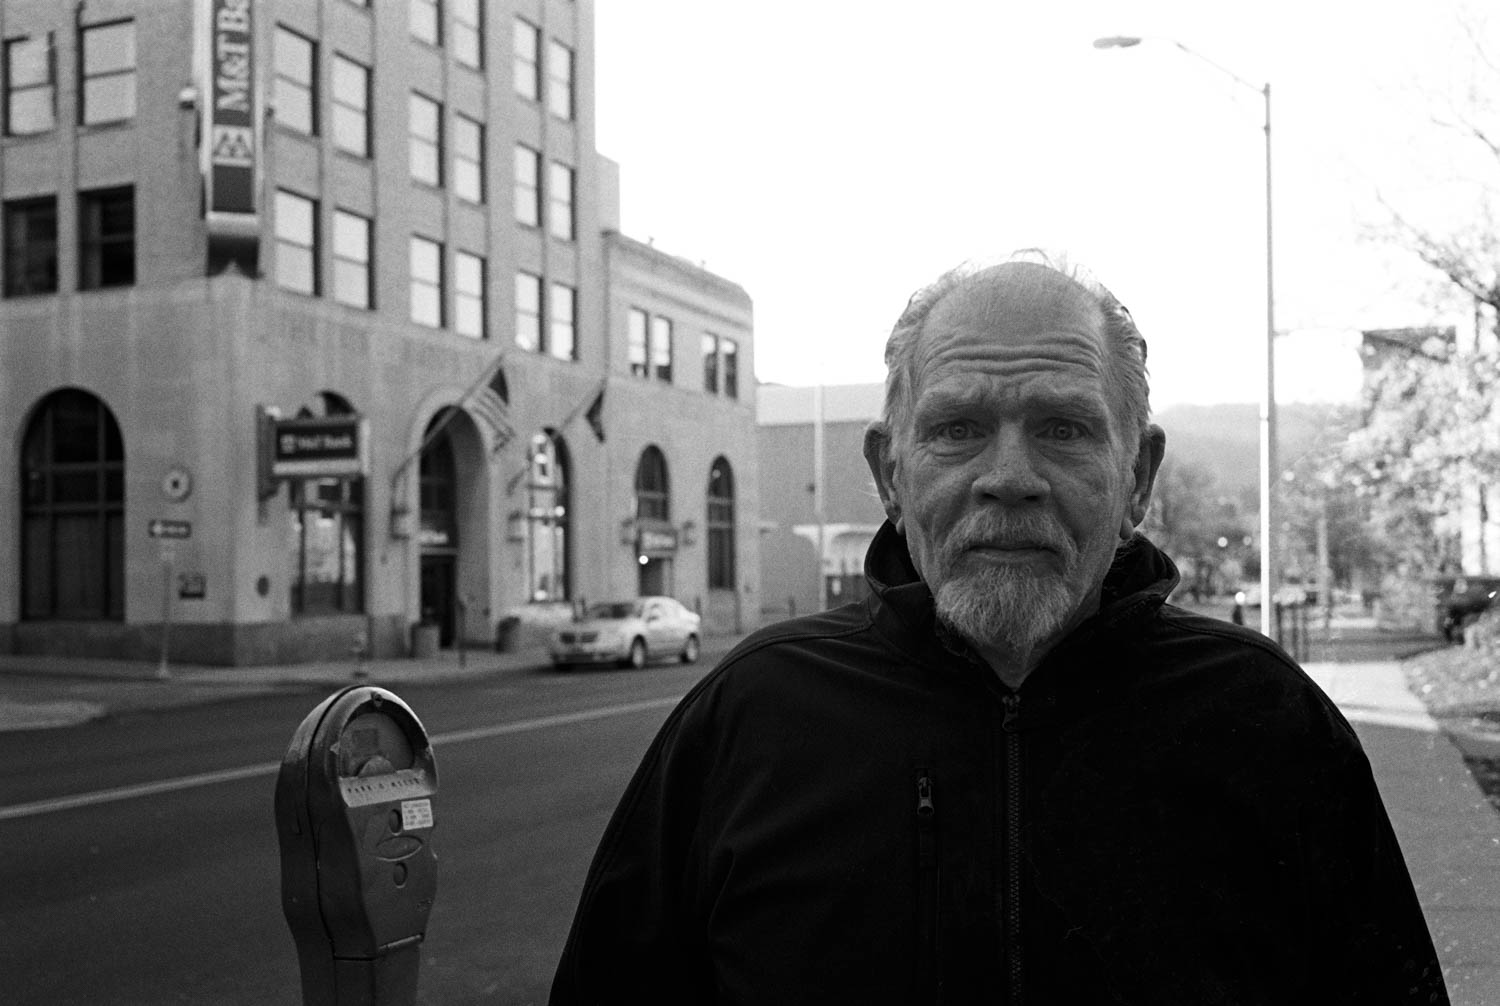 A black and white street portrait of a man standing on the sidewalk in Binghamton, NY